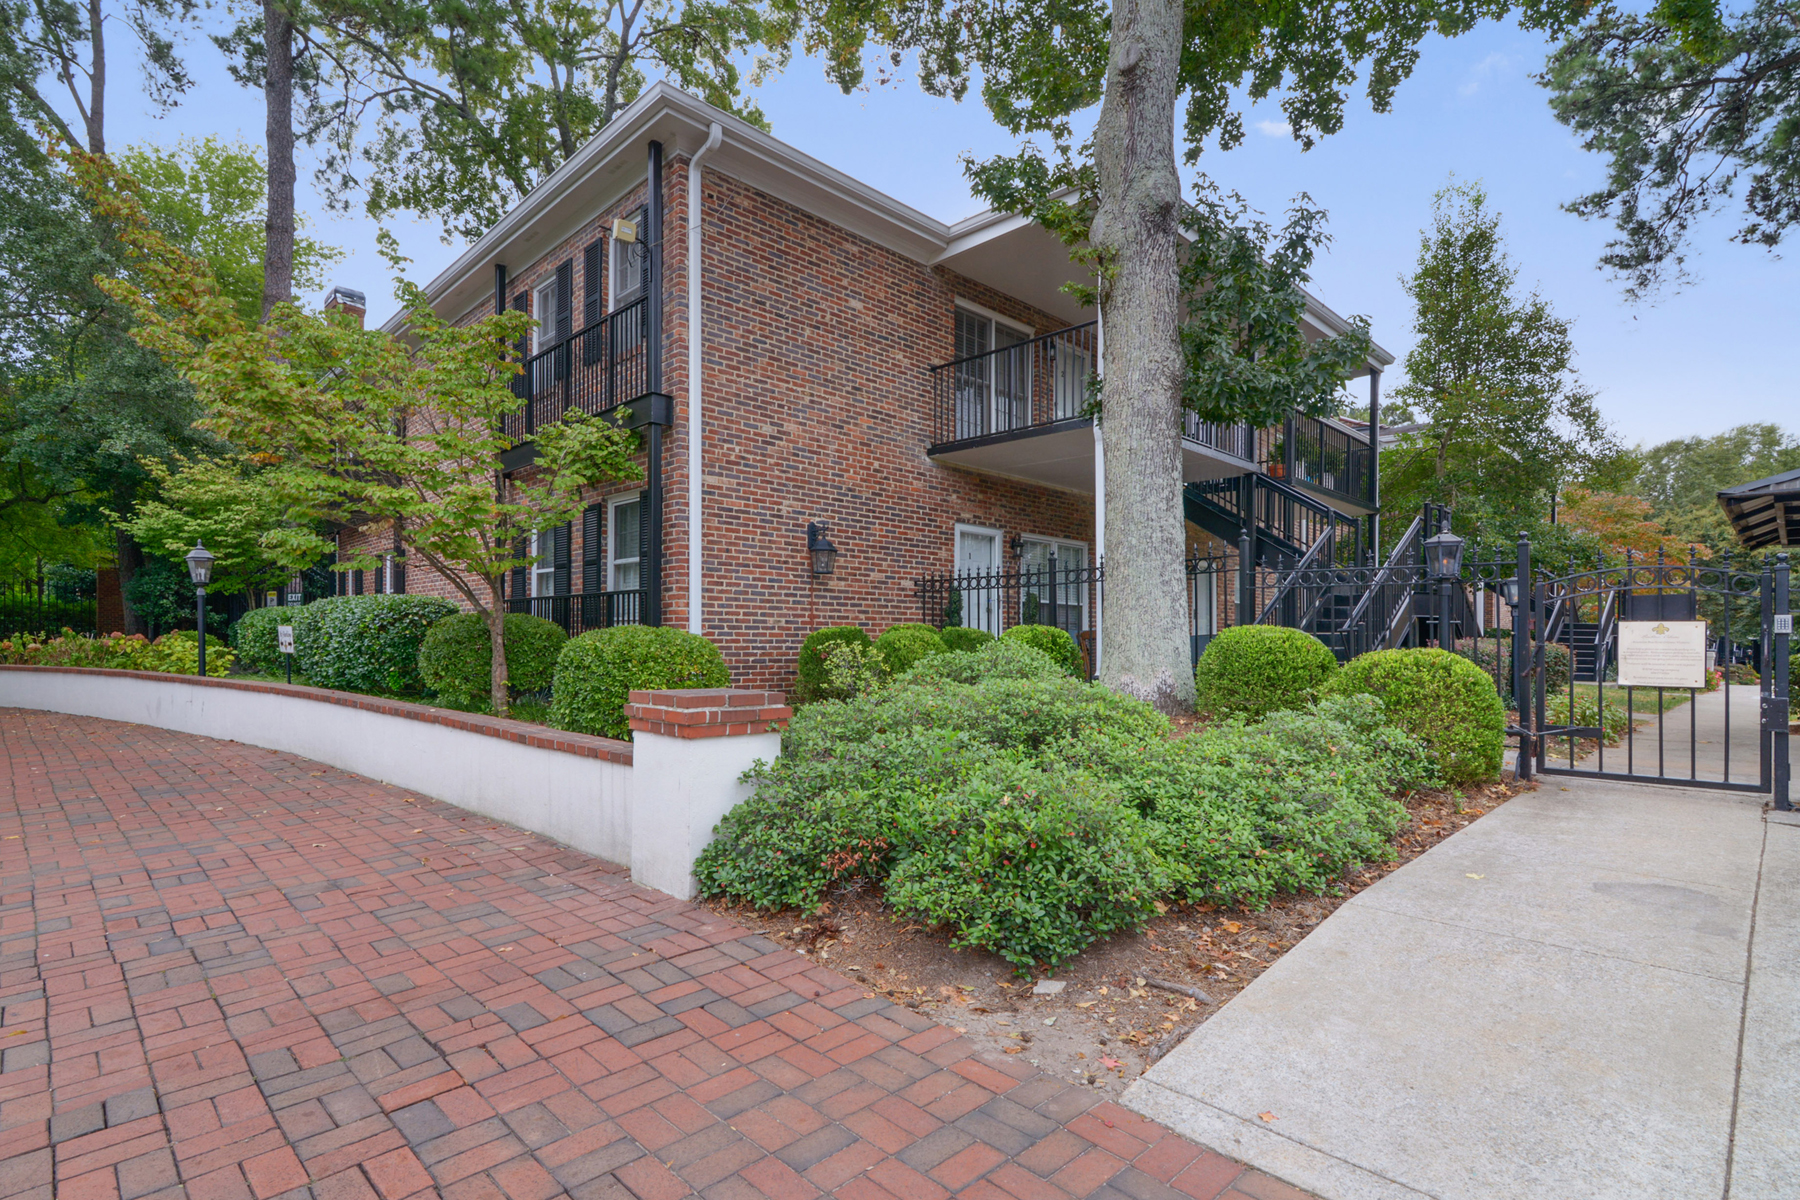 Additional photo for property listing at Move In Ready Condo In Peachtree Orleans 3675 Peachtree Road Unit 44 Atlanta, Γεωργια 30319 Ηνωμενεσ Πολιτειεσ